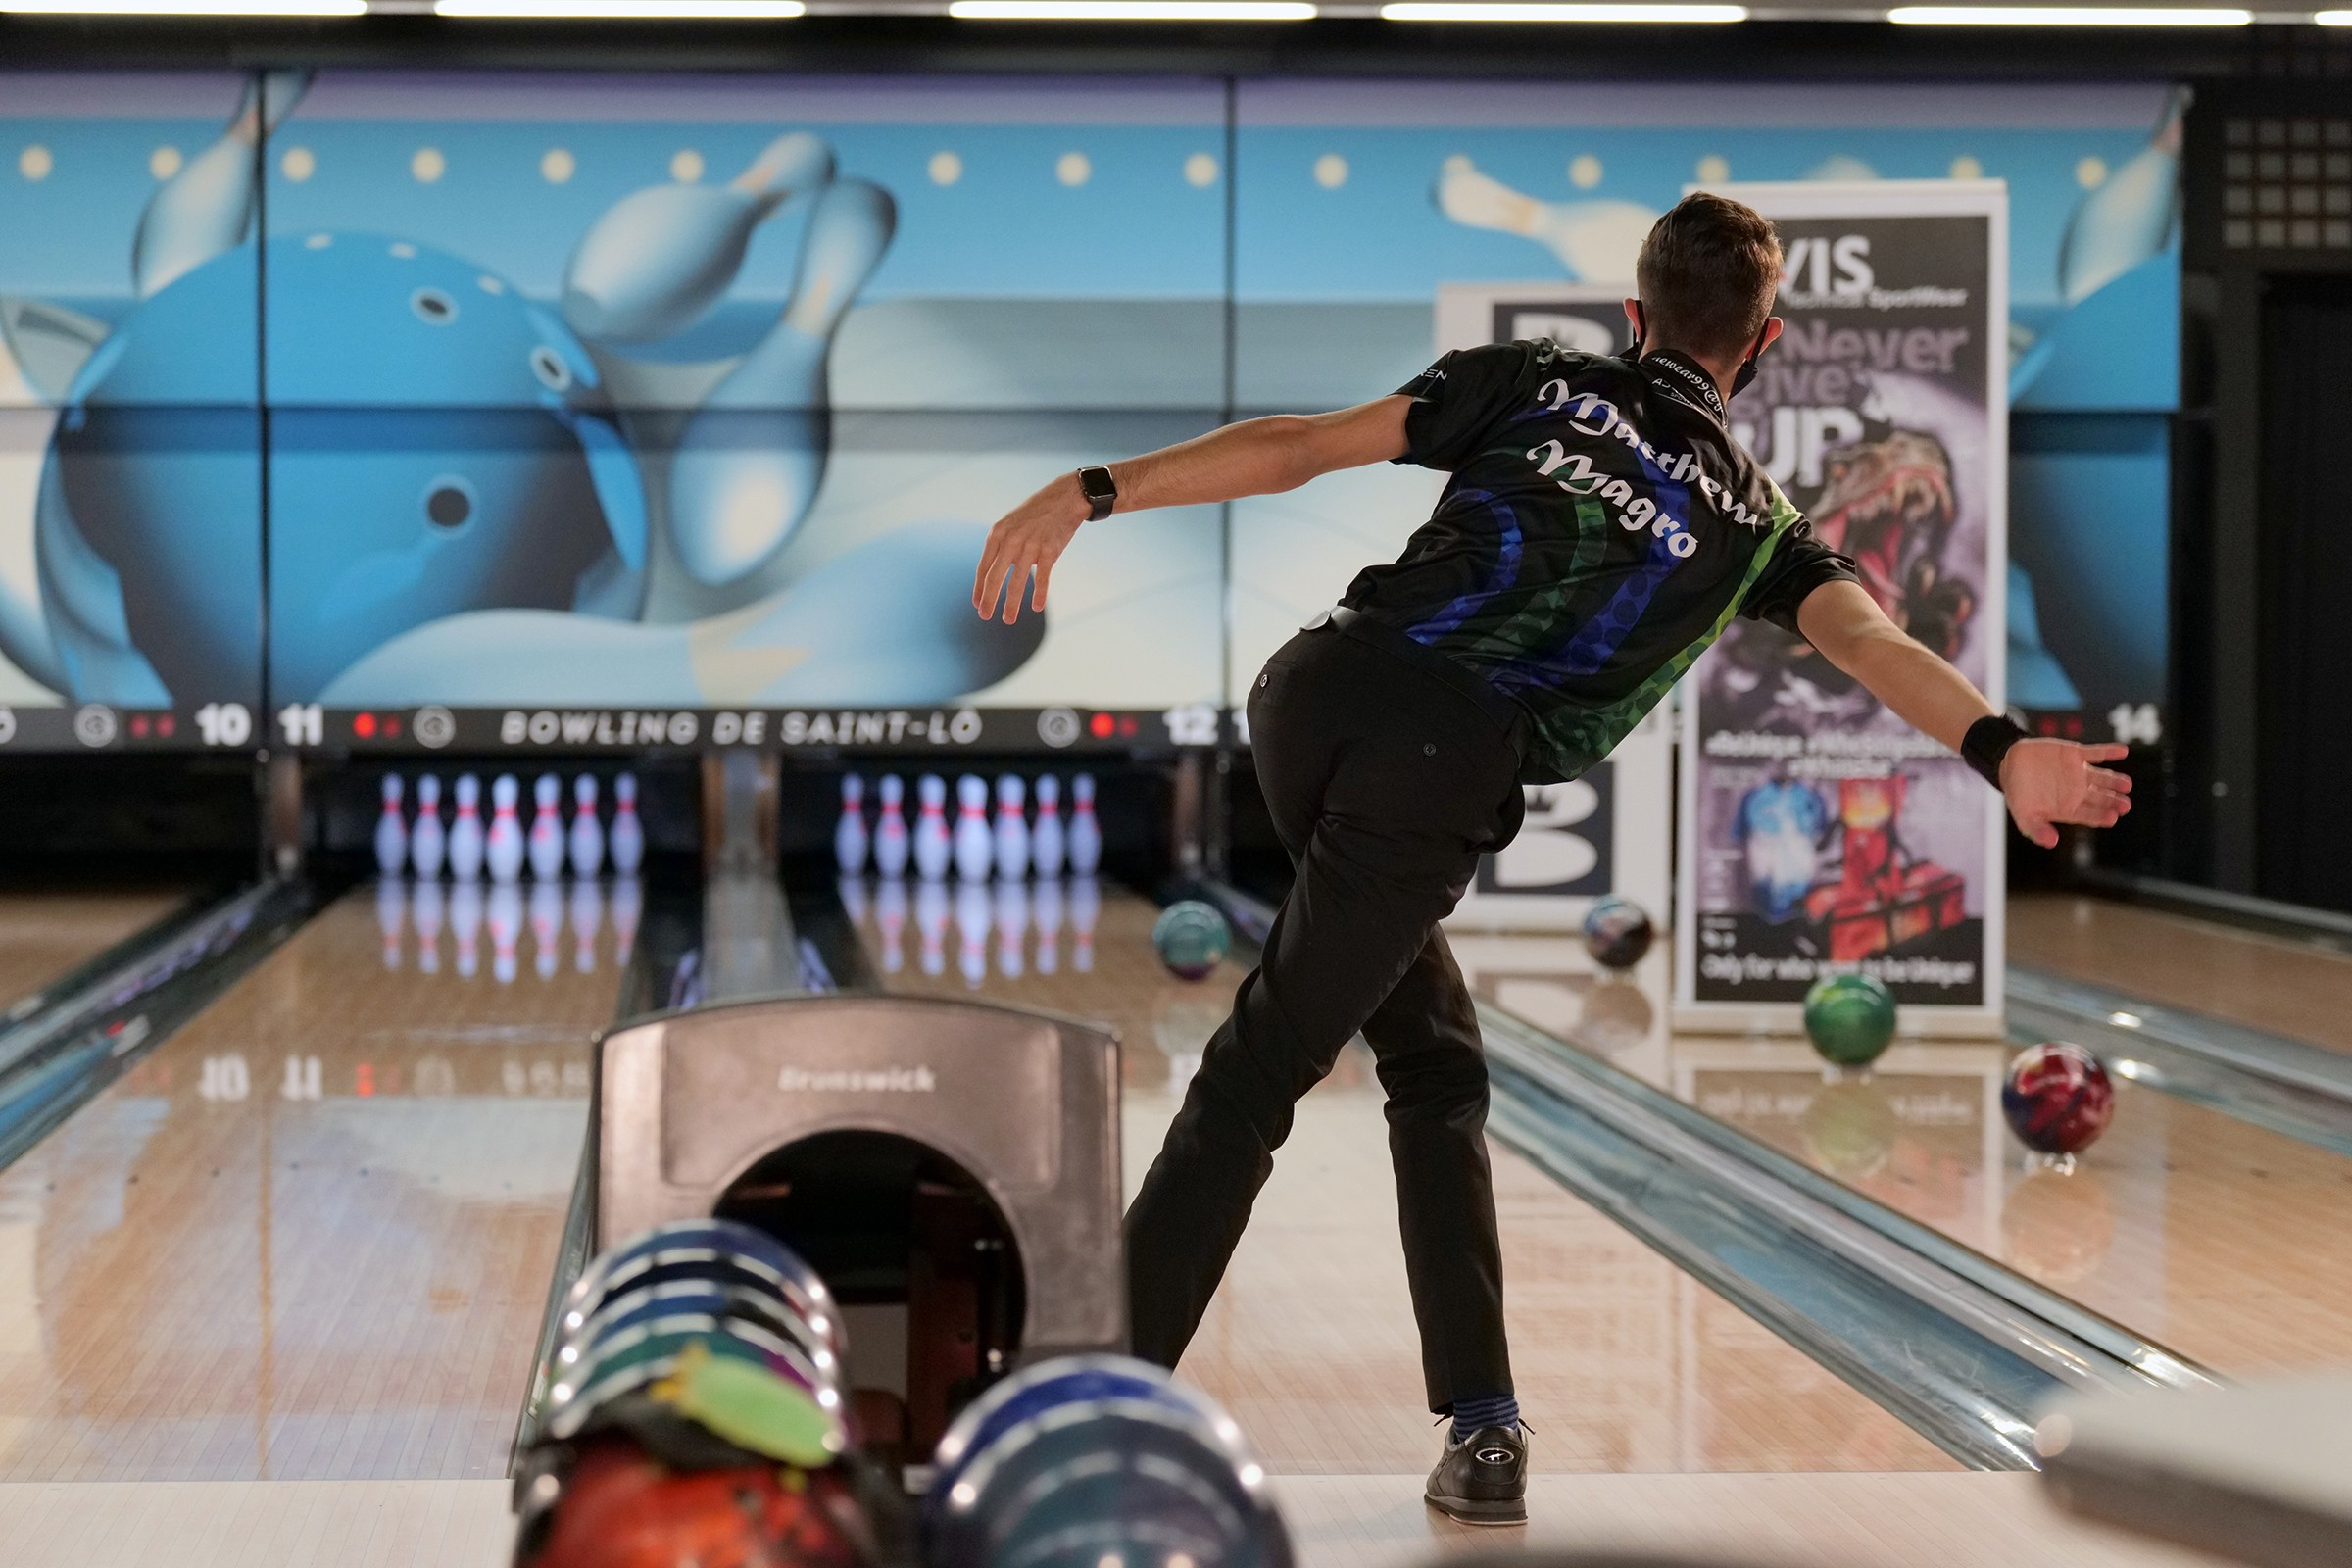 Bowling promotion tour 2020 saint lo photos ruel alain 015